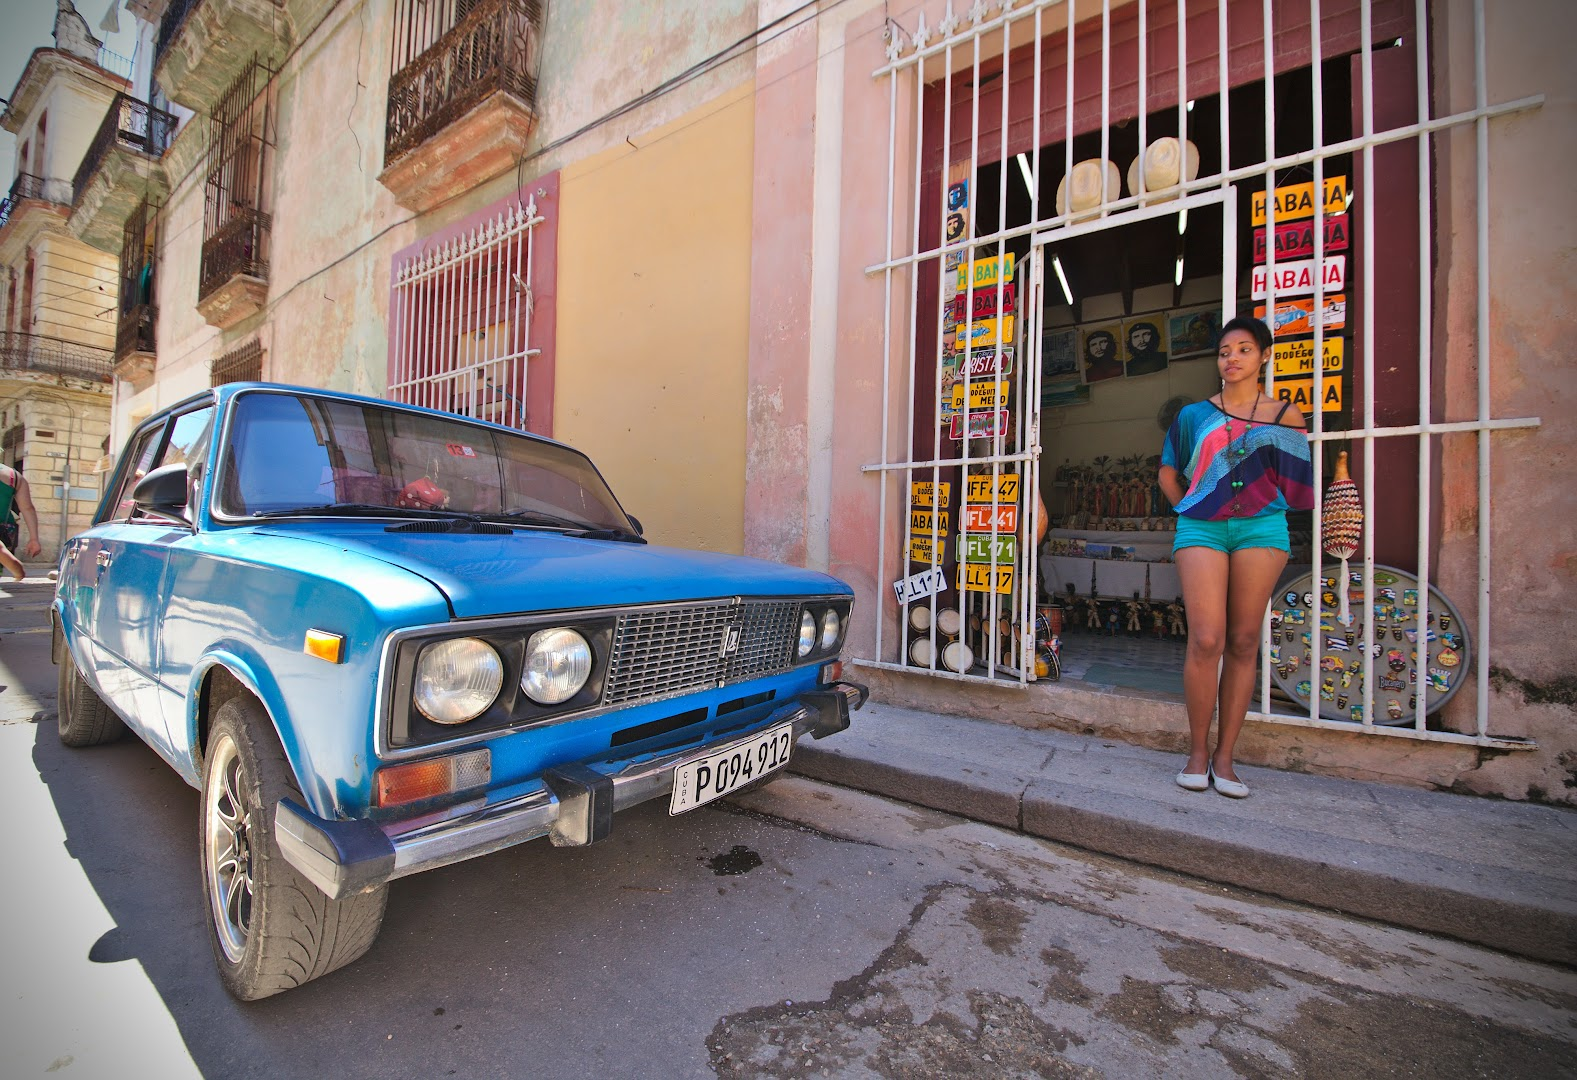 Cuba has either 1950s American cars or 1970s Soviet cars